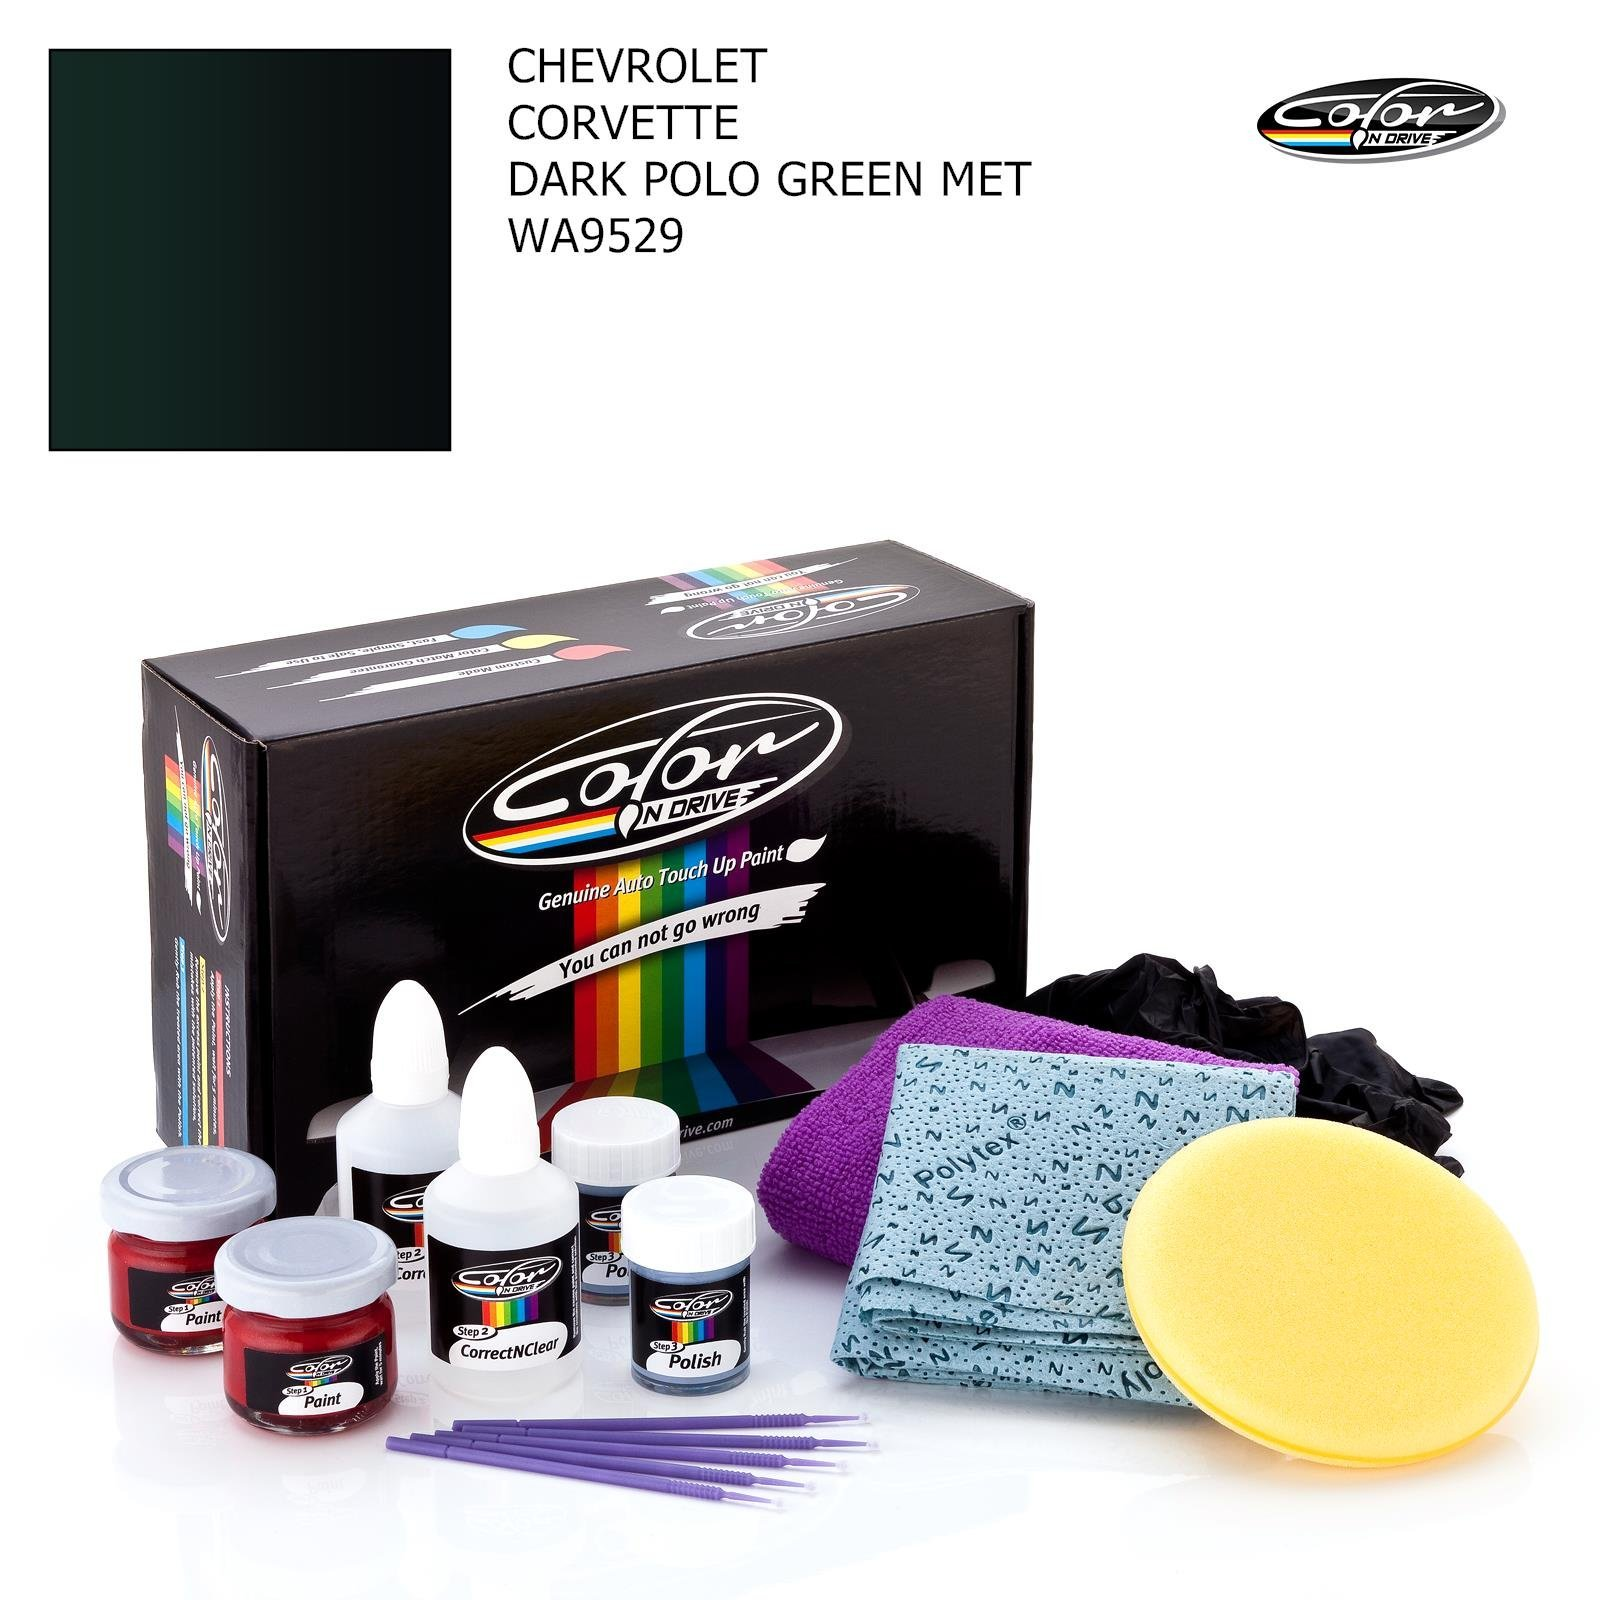 CHEVROLET CORVETTE / DARK POLO GREEN MET - WA9529 / COLOR N DRIVE TOUCH UP PAINT SYSTEM FOR PAINT CHIPS AND SCRATCHES / PRO PACK